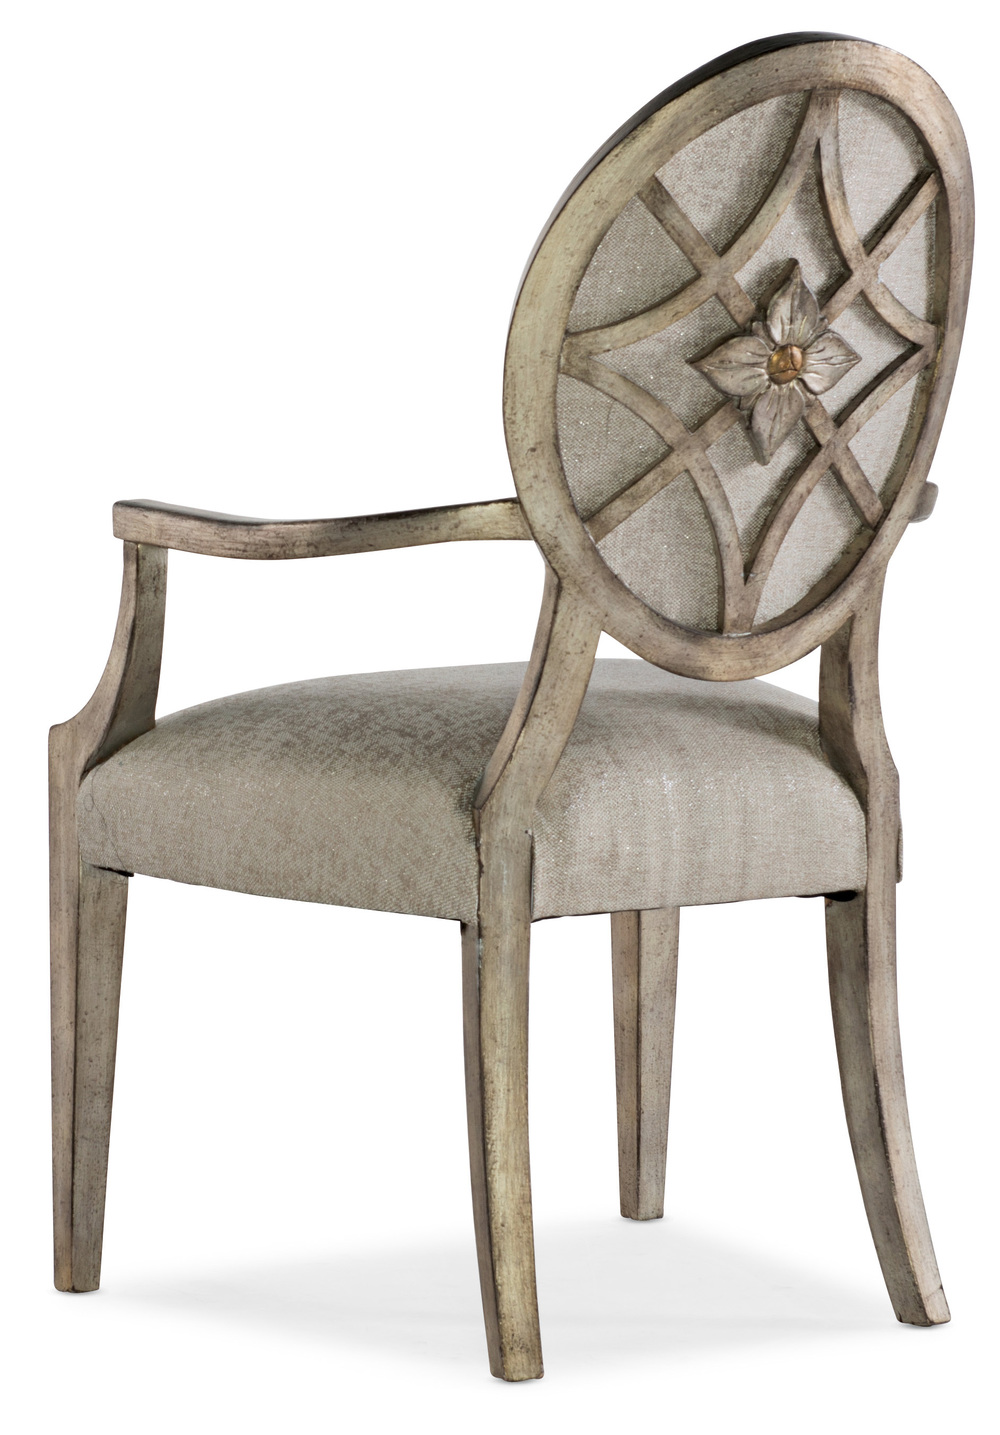 Hooker Furniture - Romantique Oval Arm Chair